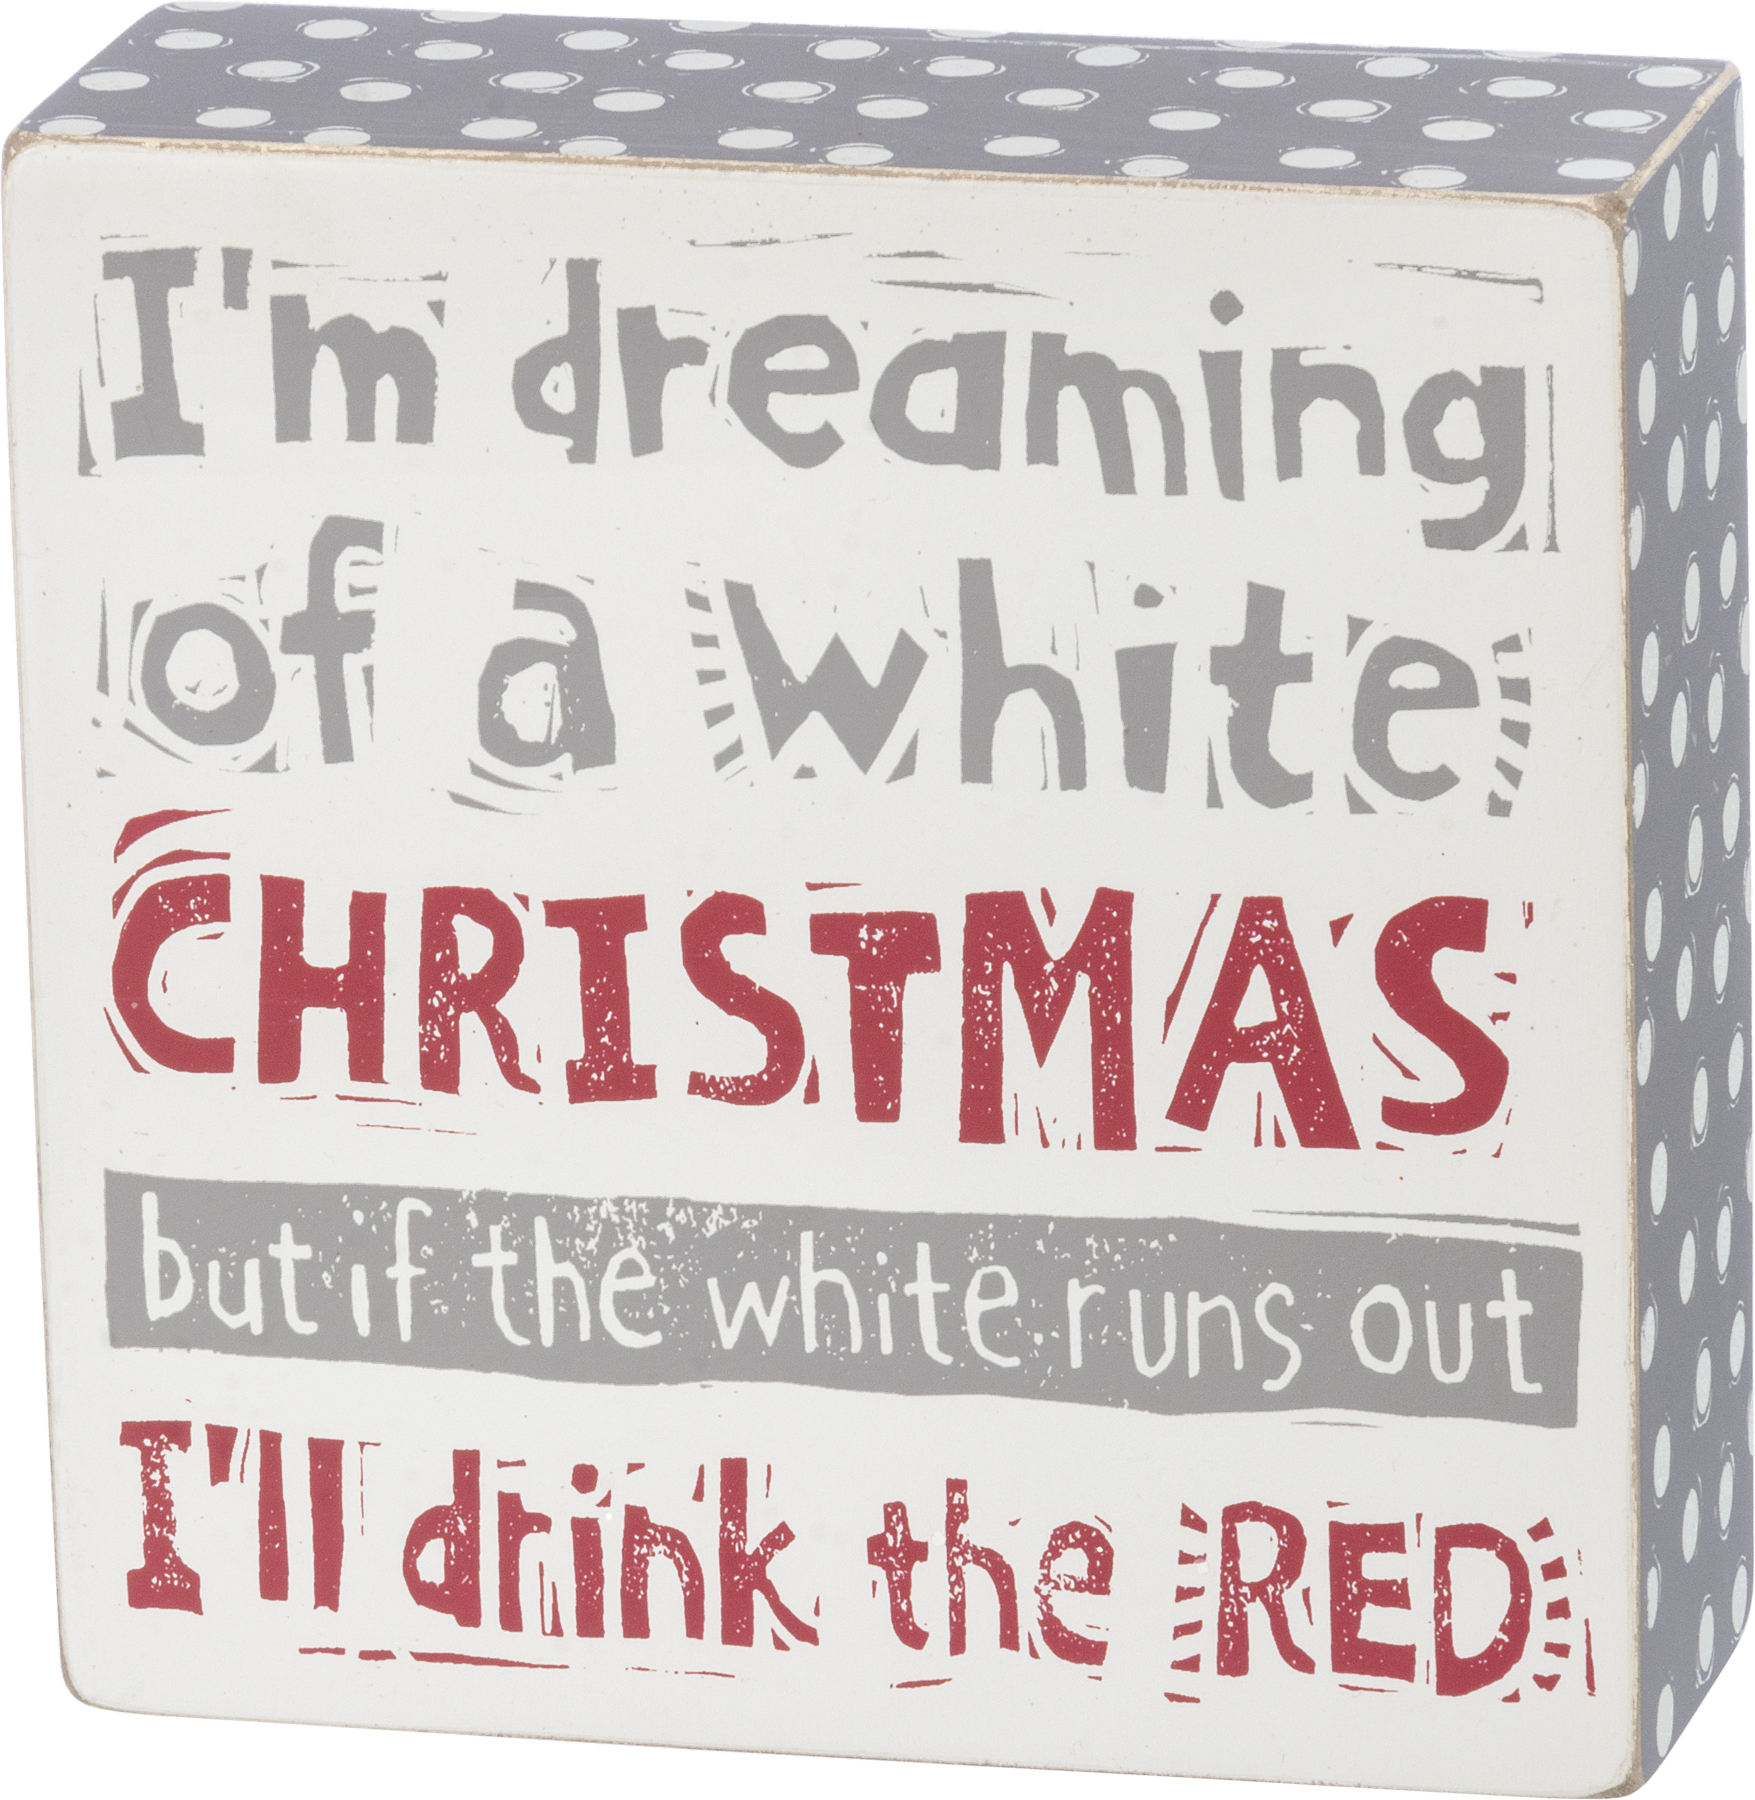 Dreaming Of A White Christmas.I M Dreaming Of A White Christmas But If Wine Runs Out I Ll Drink The Red Box Sign From Primitives By Kathy